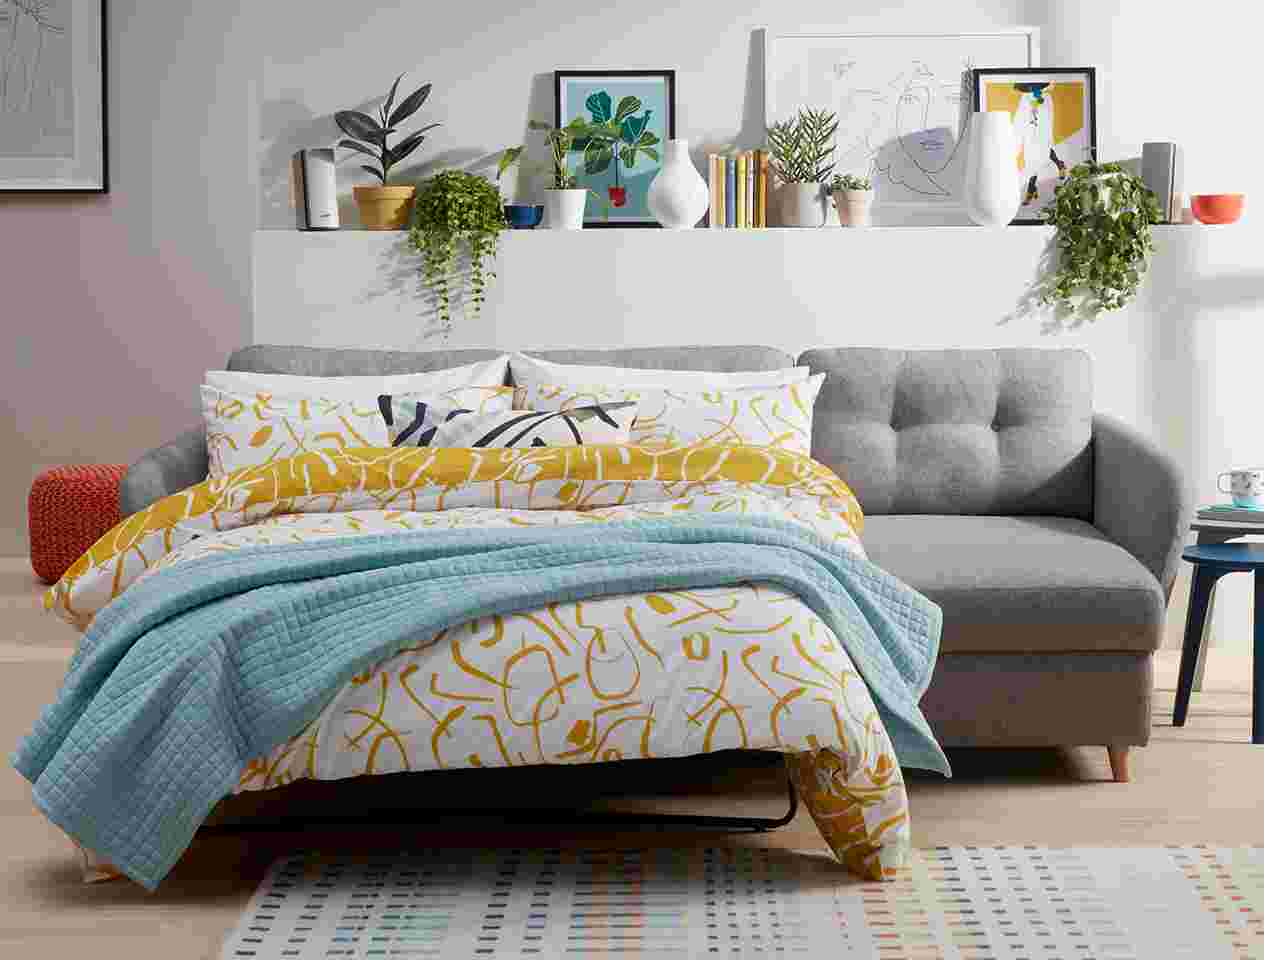 Sofa bed with bedding